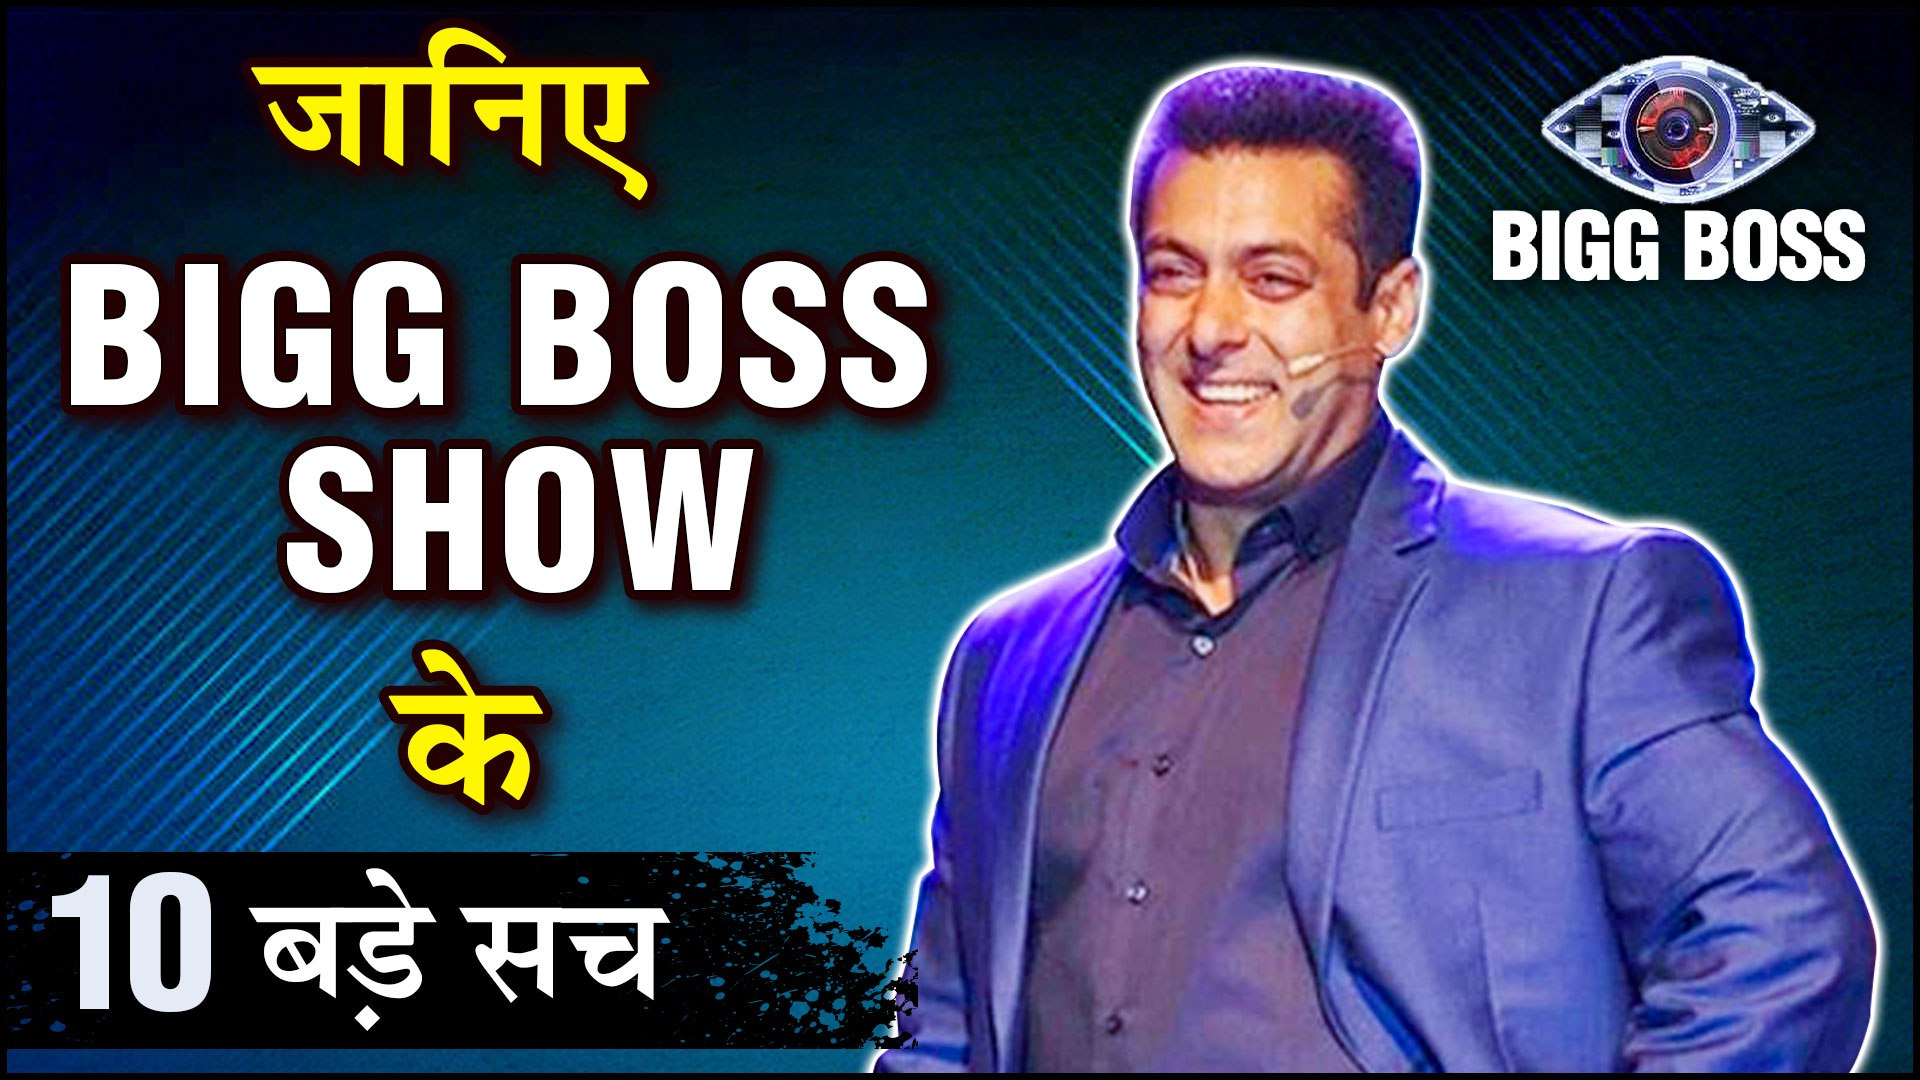 Bigg Boss Show 10 SHOCKING UNKNOWN Facts | TellyMasala